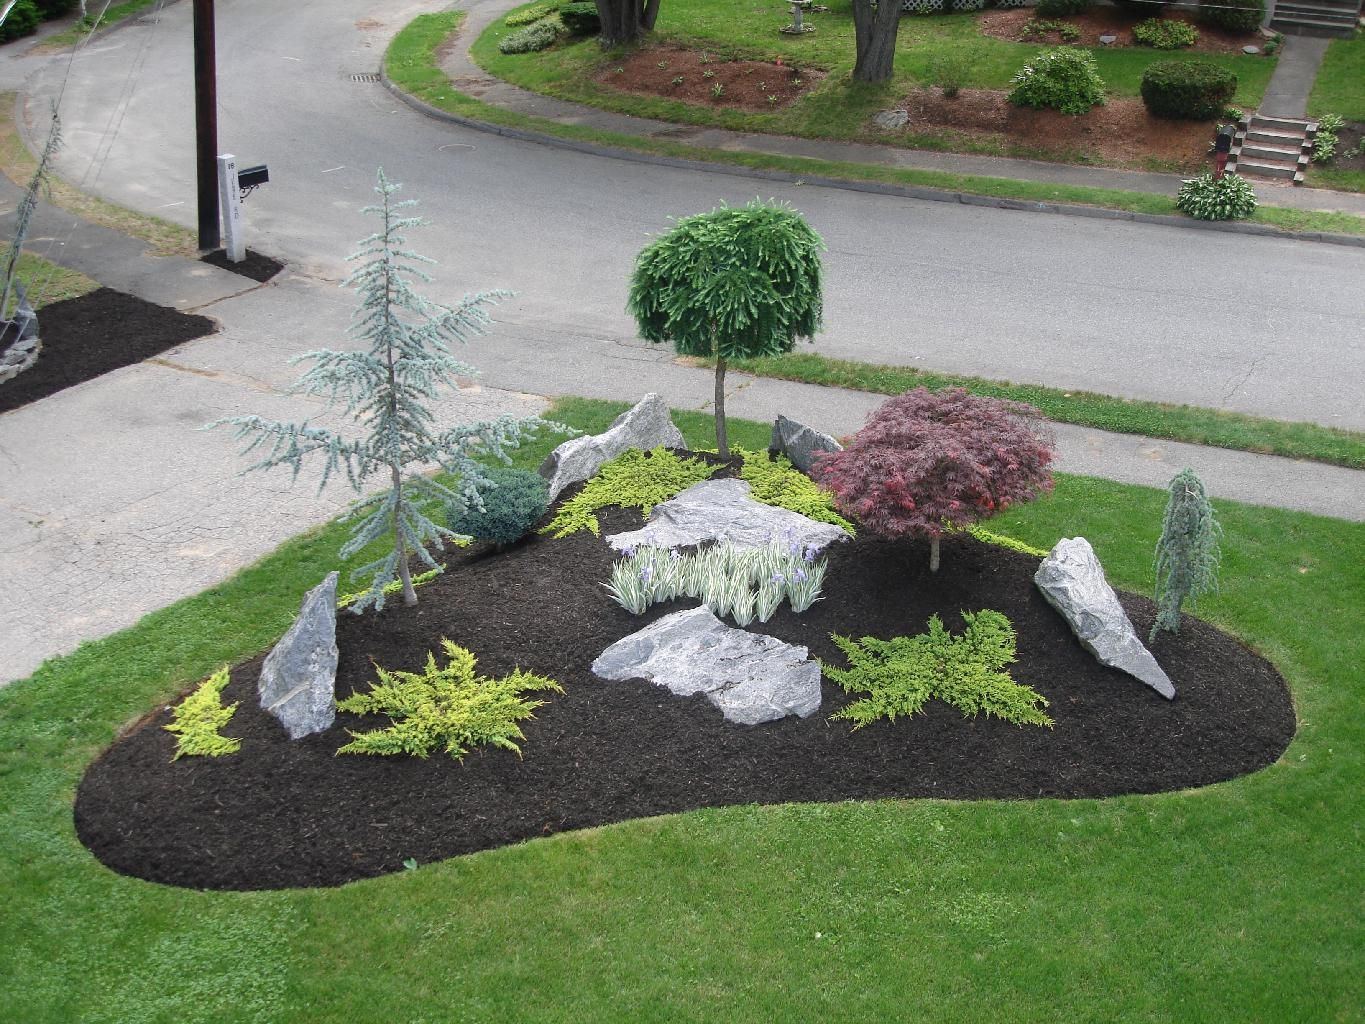 Simple landscape designs with rock beds google search for Simple garden landscape ideas